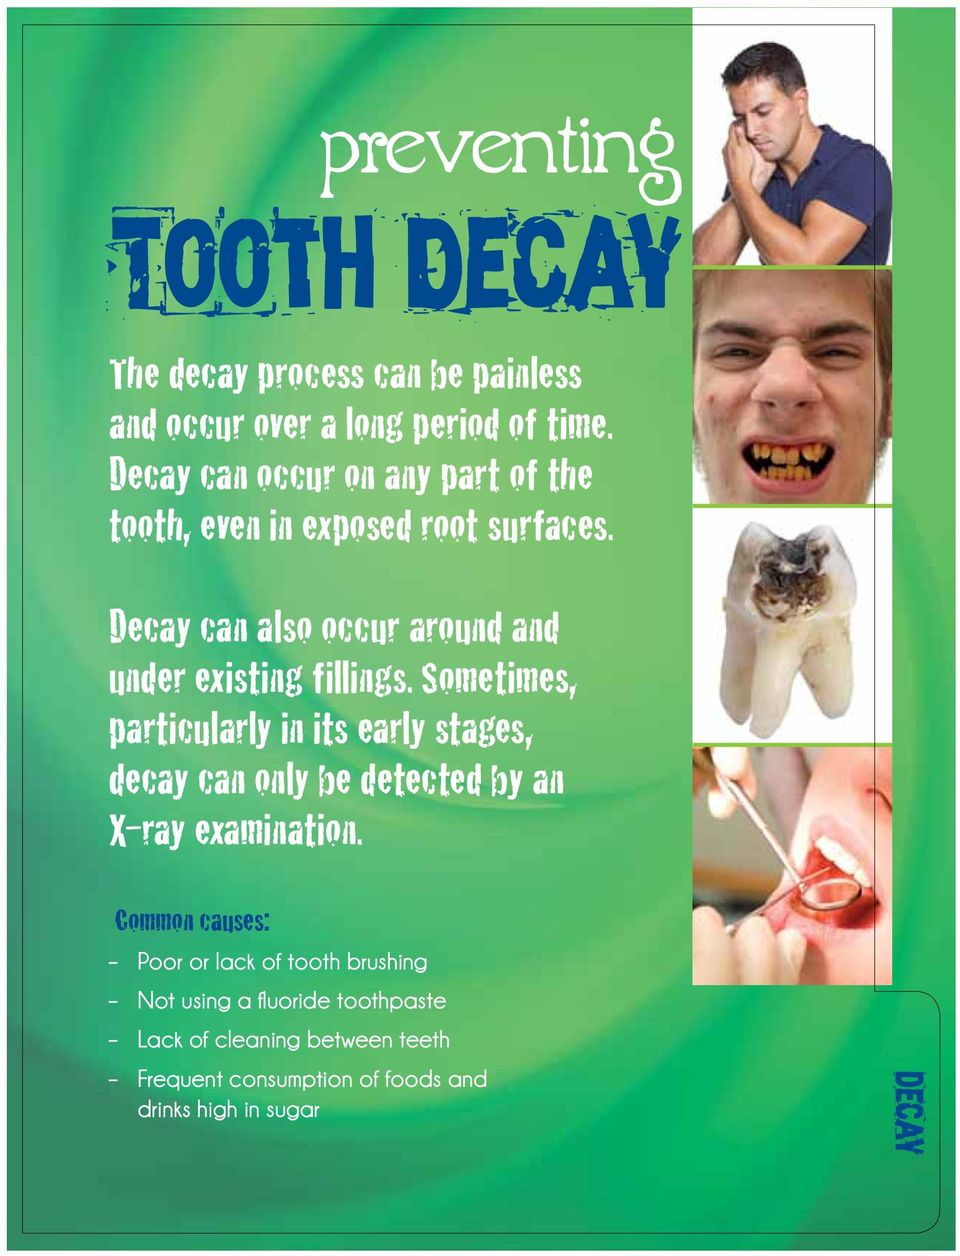 Decay can also occur around and under existing fillings.